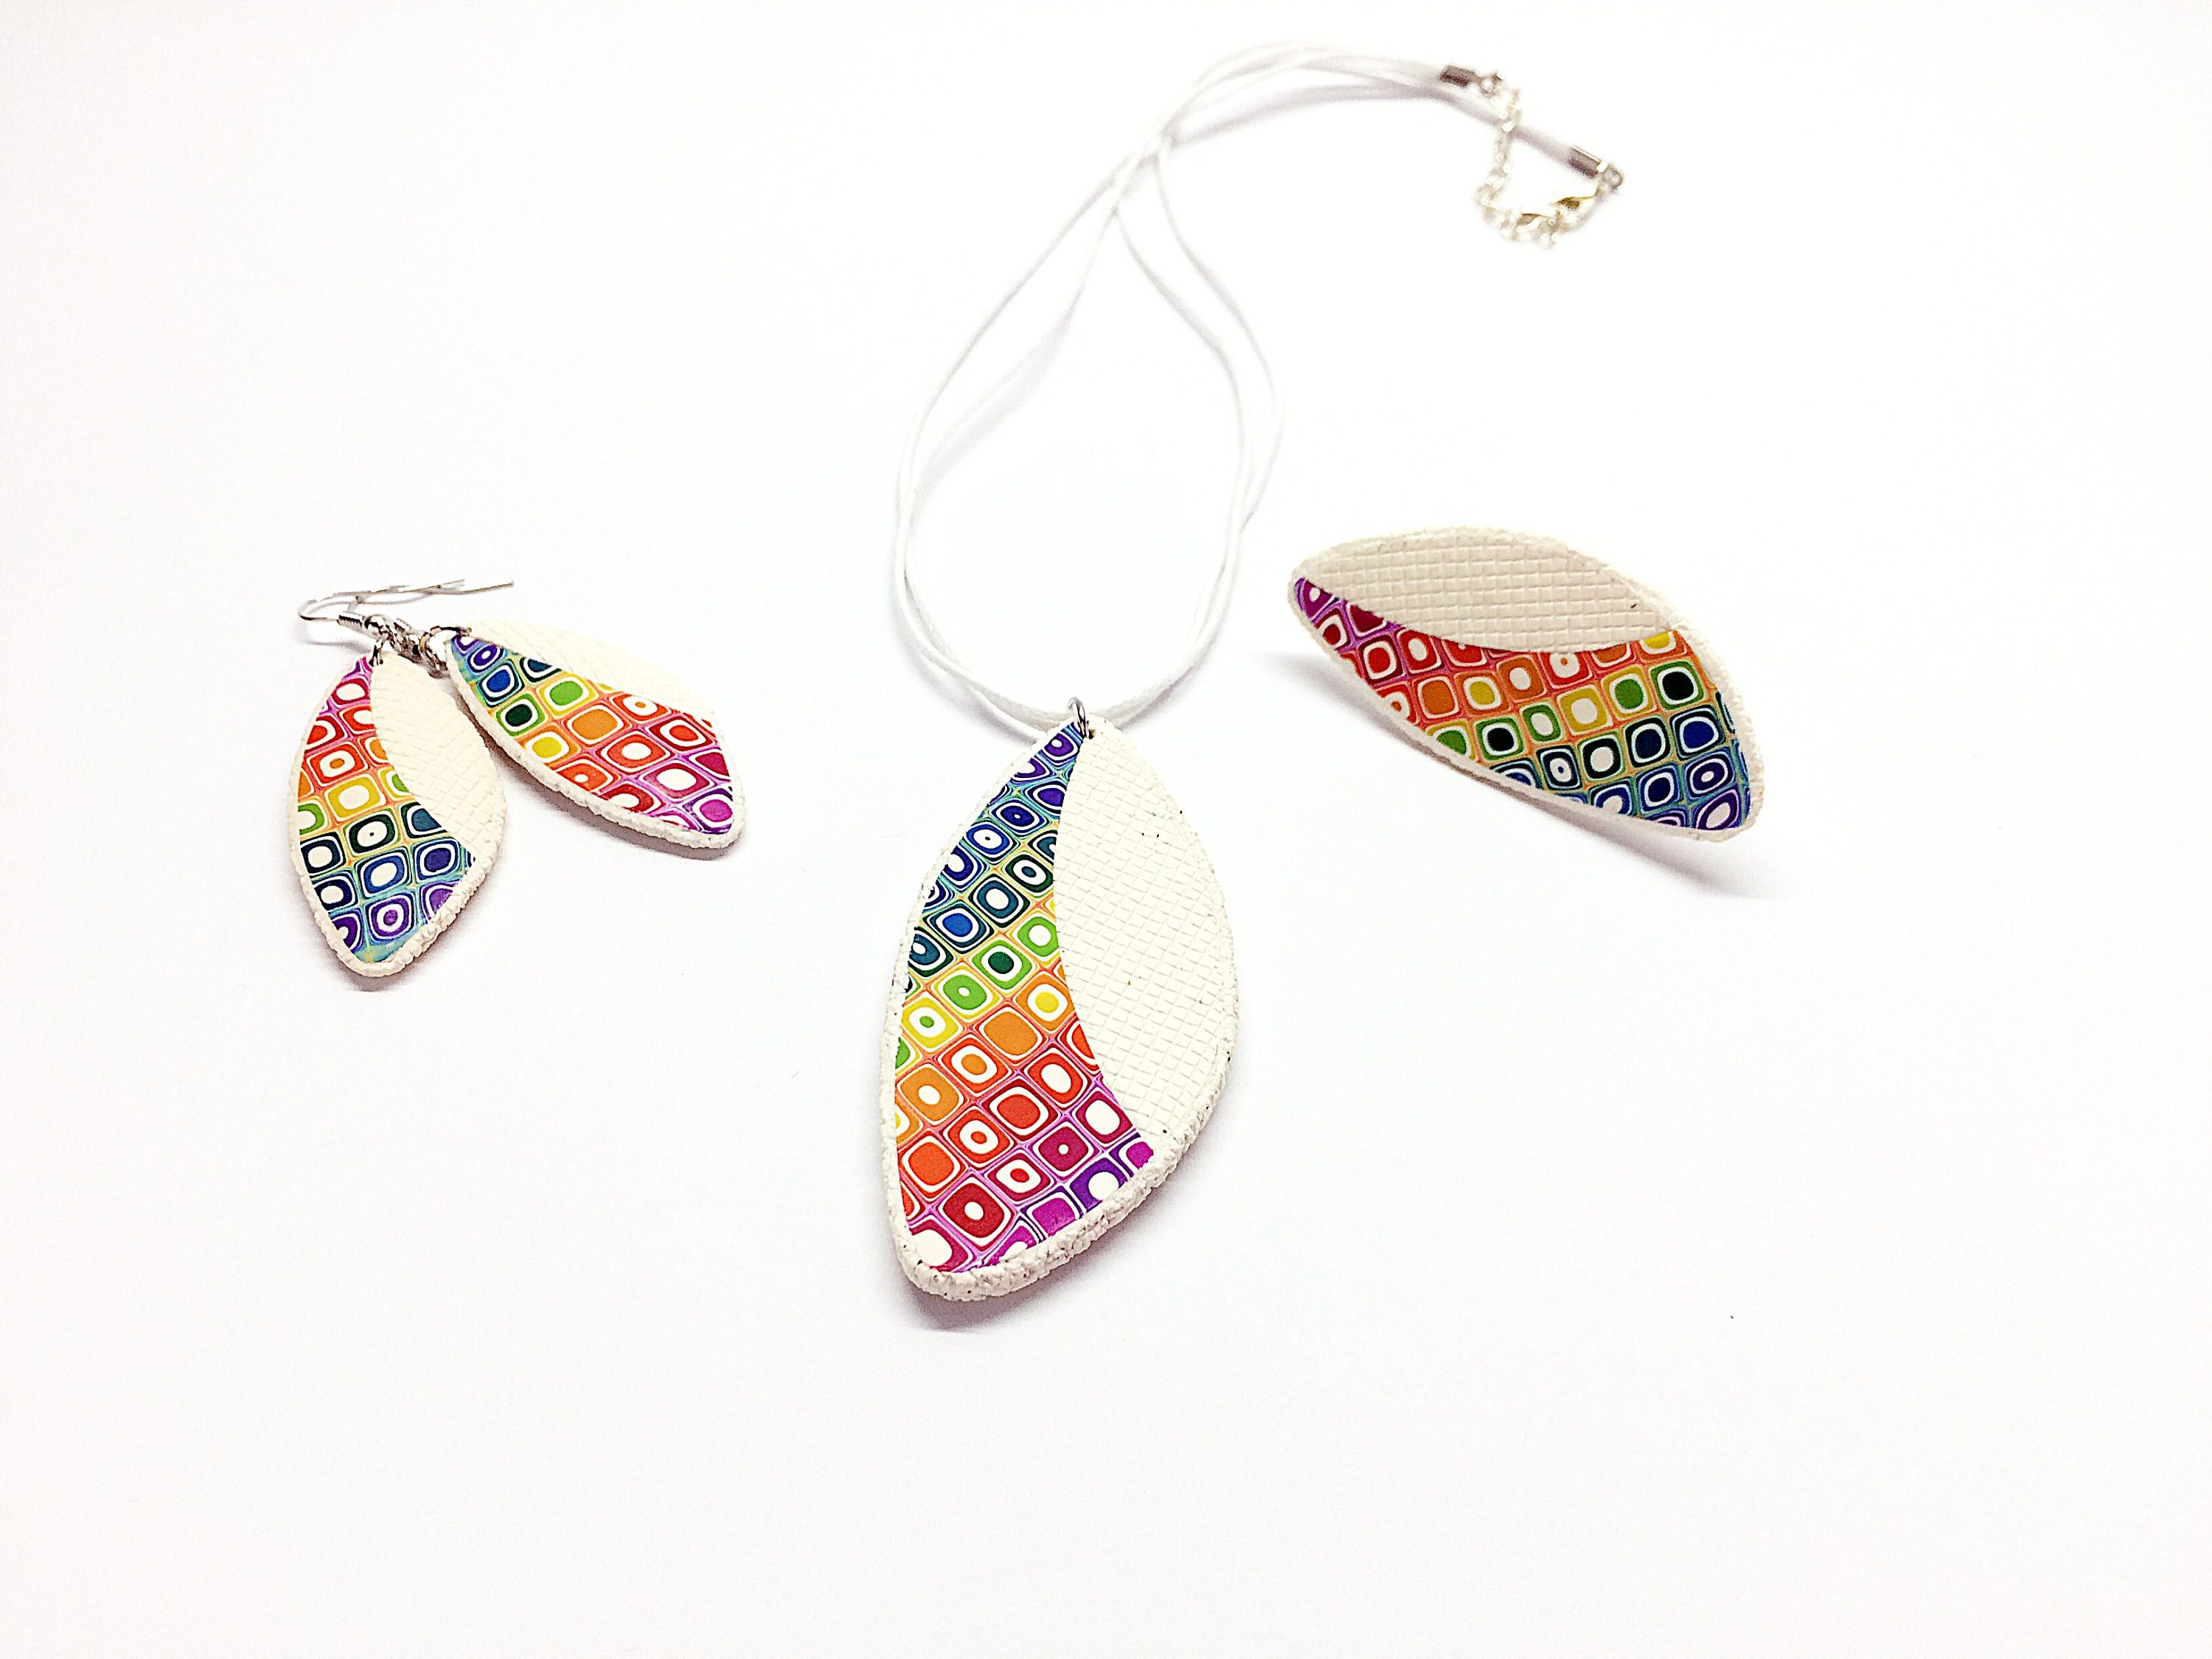 kc center s product moon kreativity rainbow titanium earrings